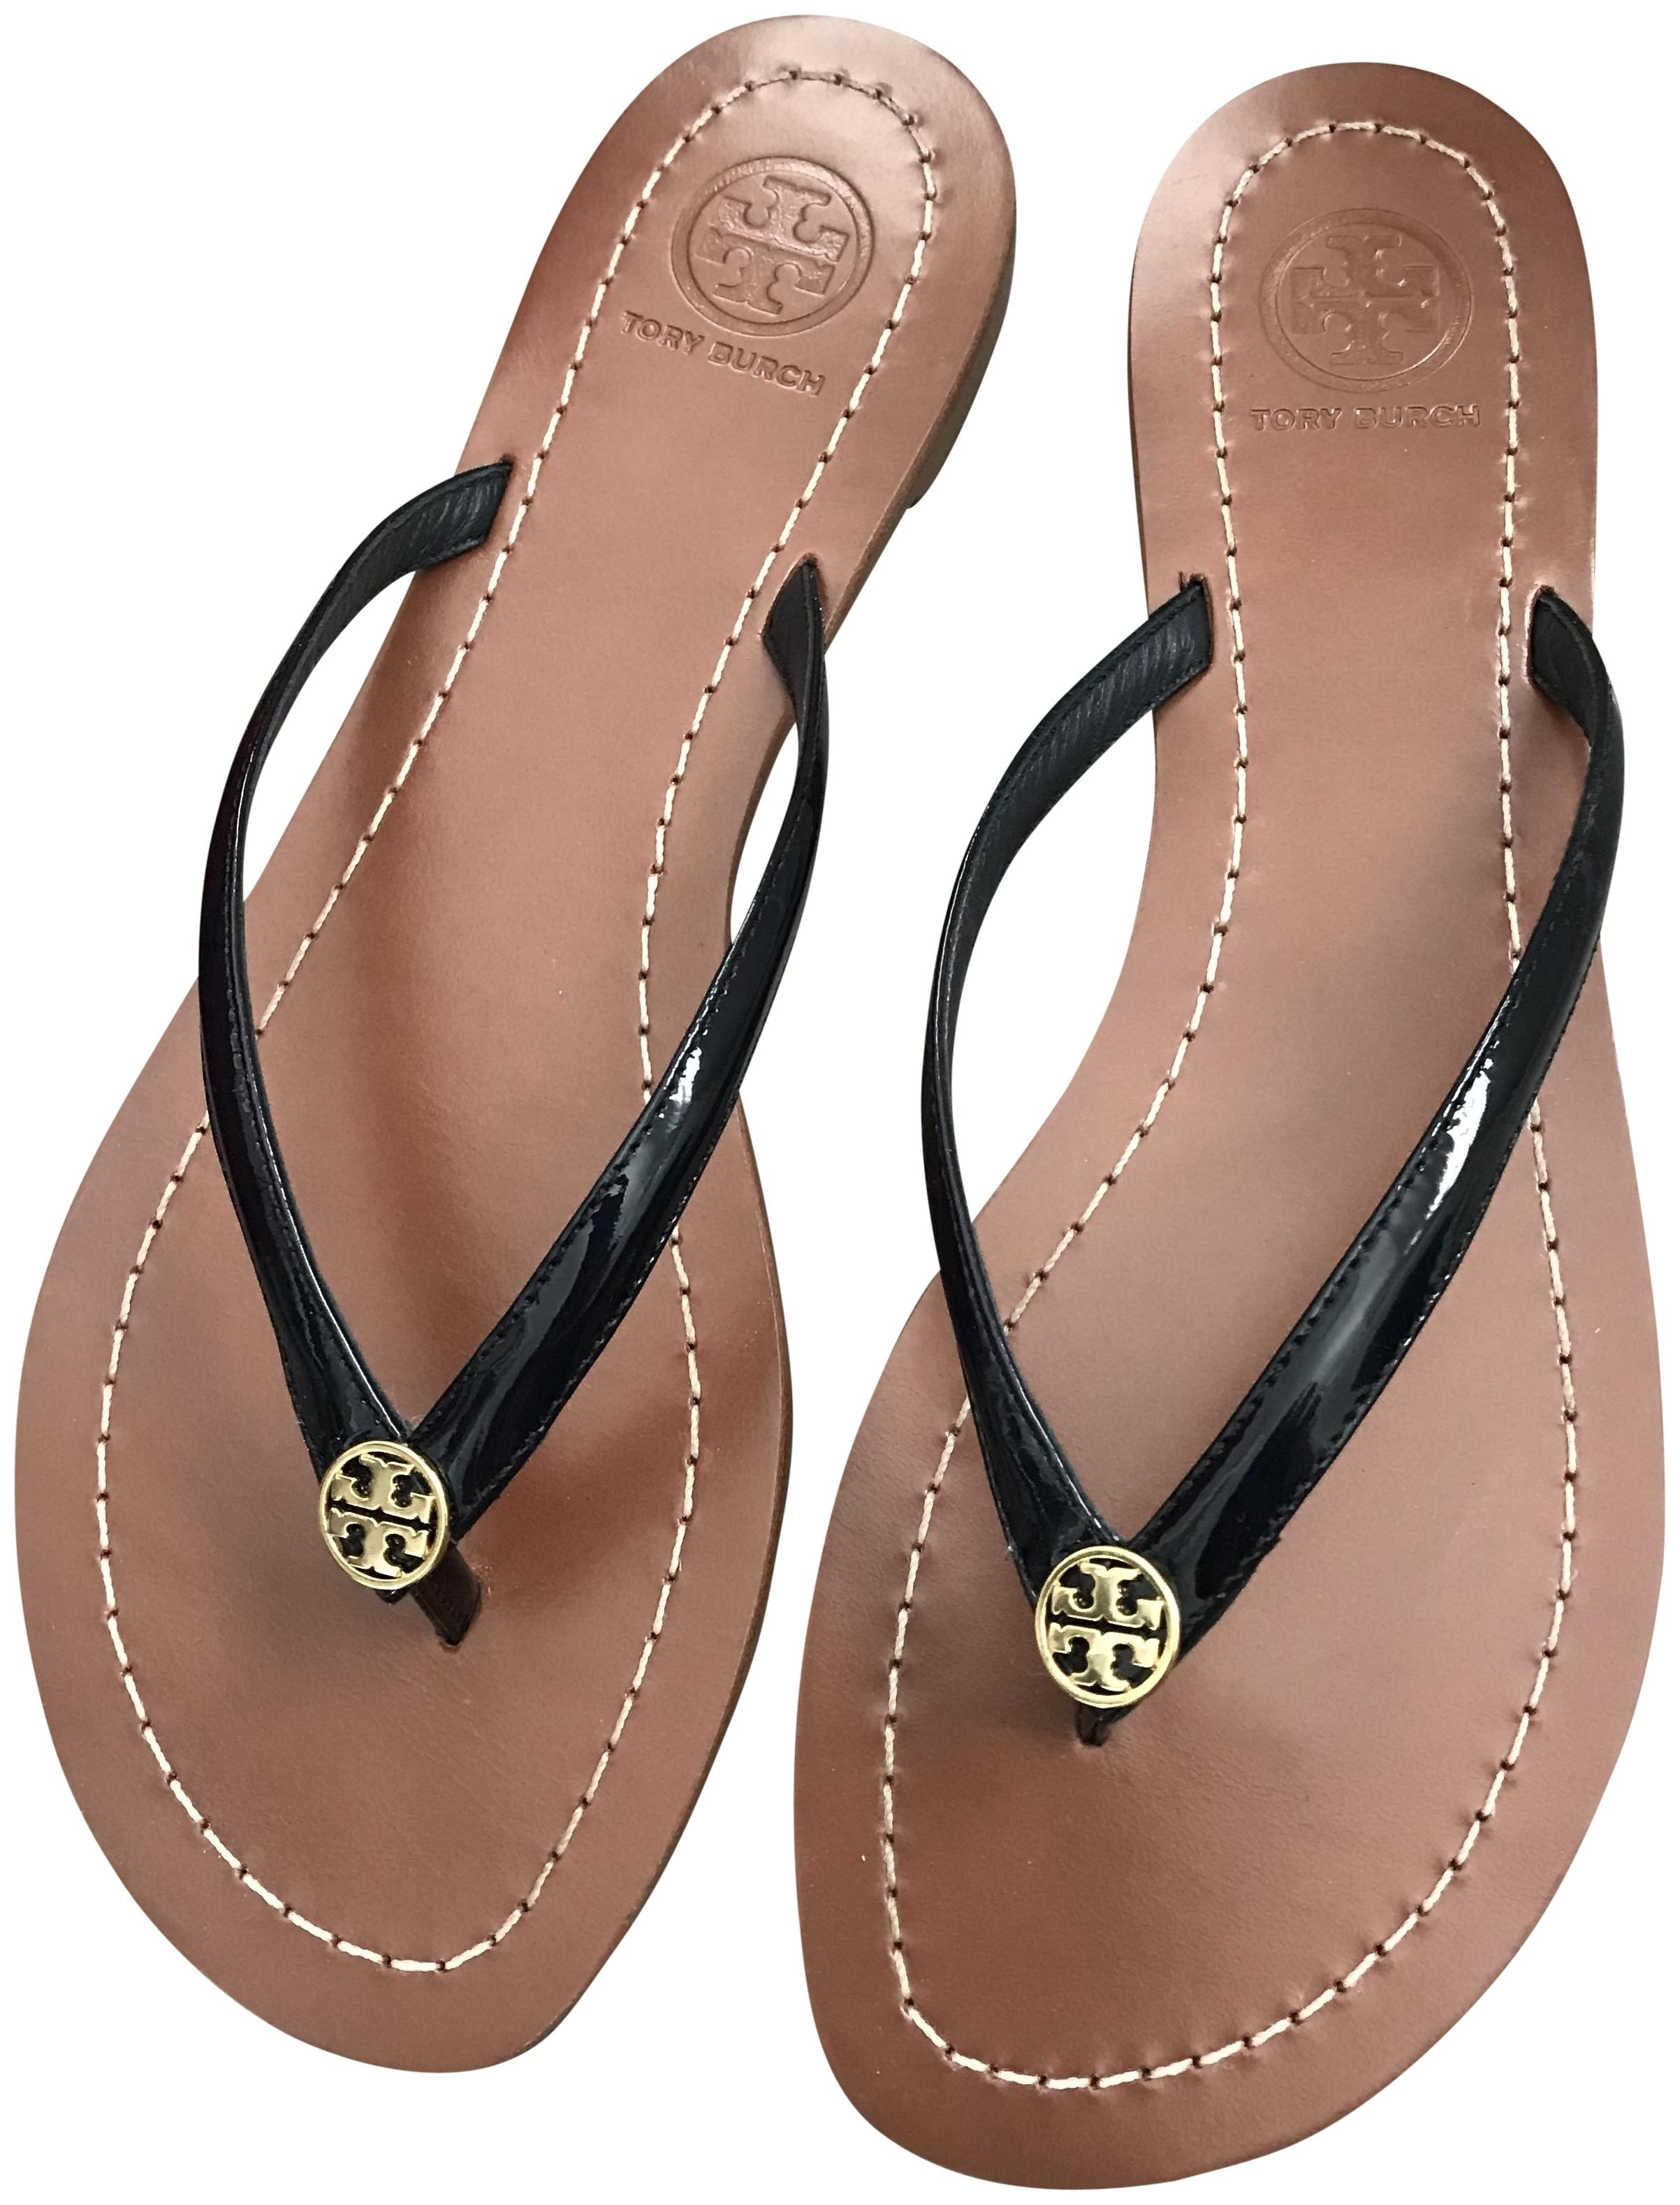 f8e7329a2c11 Tory Burch Burch Burch Navy Terra Thong - - Sandals Size US 8 Regular (M